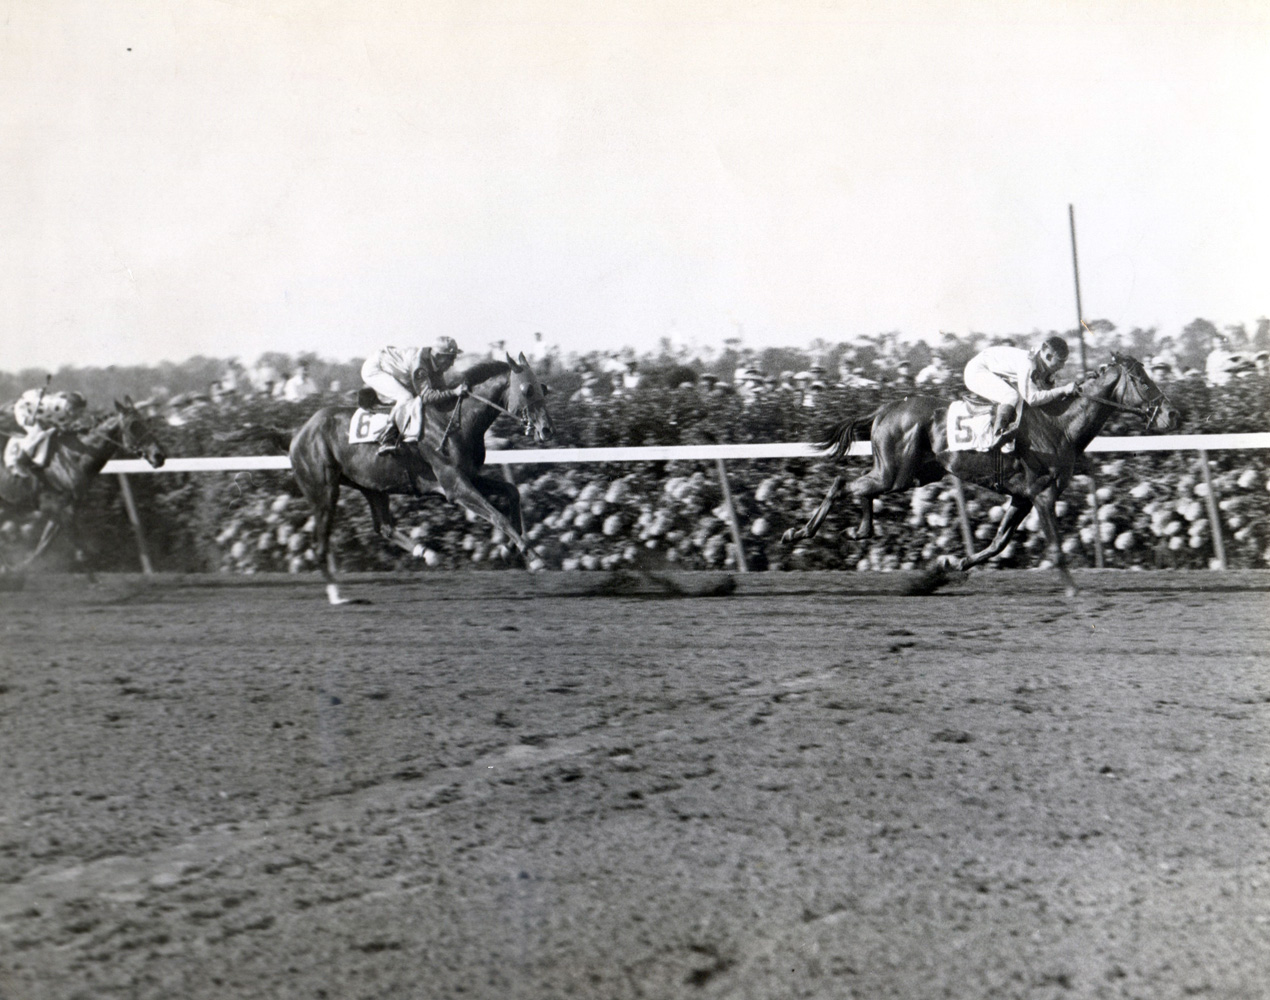 Reigh Count (Chick Lang up) winning the 1928 Lawrence Realization at Belmont Park (Fotograms/Museum Collection)